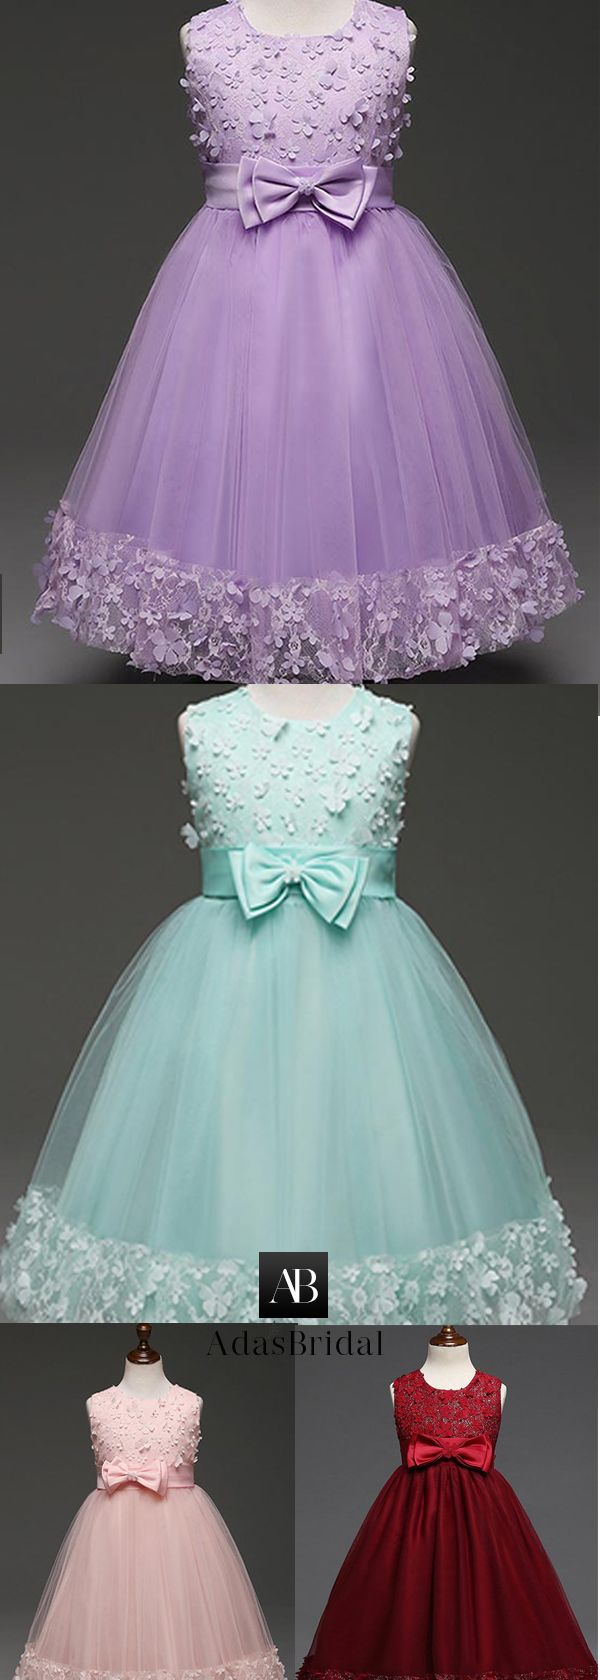 Marvelous Tulle Jewel Neckline Floor-length Ball Gown Flower Girl Dresses With Lace Appliques & Handmade Flower & Bowknot